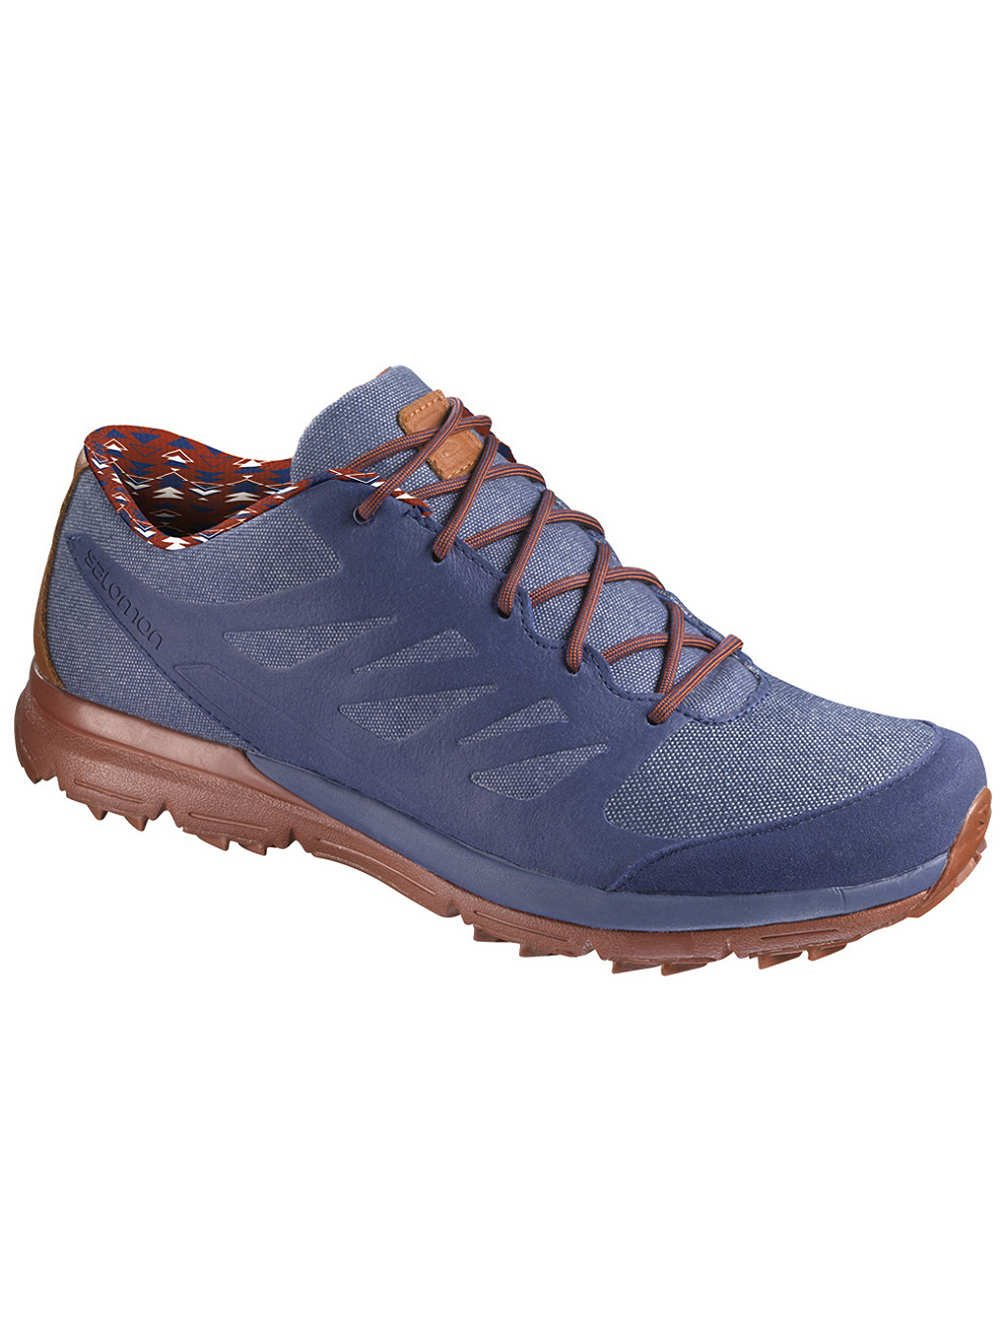 Salomon Herren Outdoor Schuh Sense Thematic Outdoor Shoes